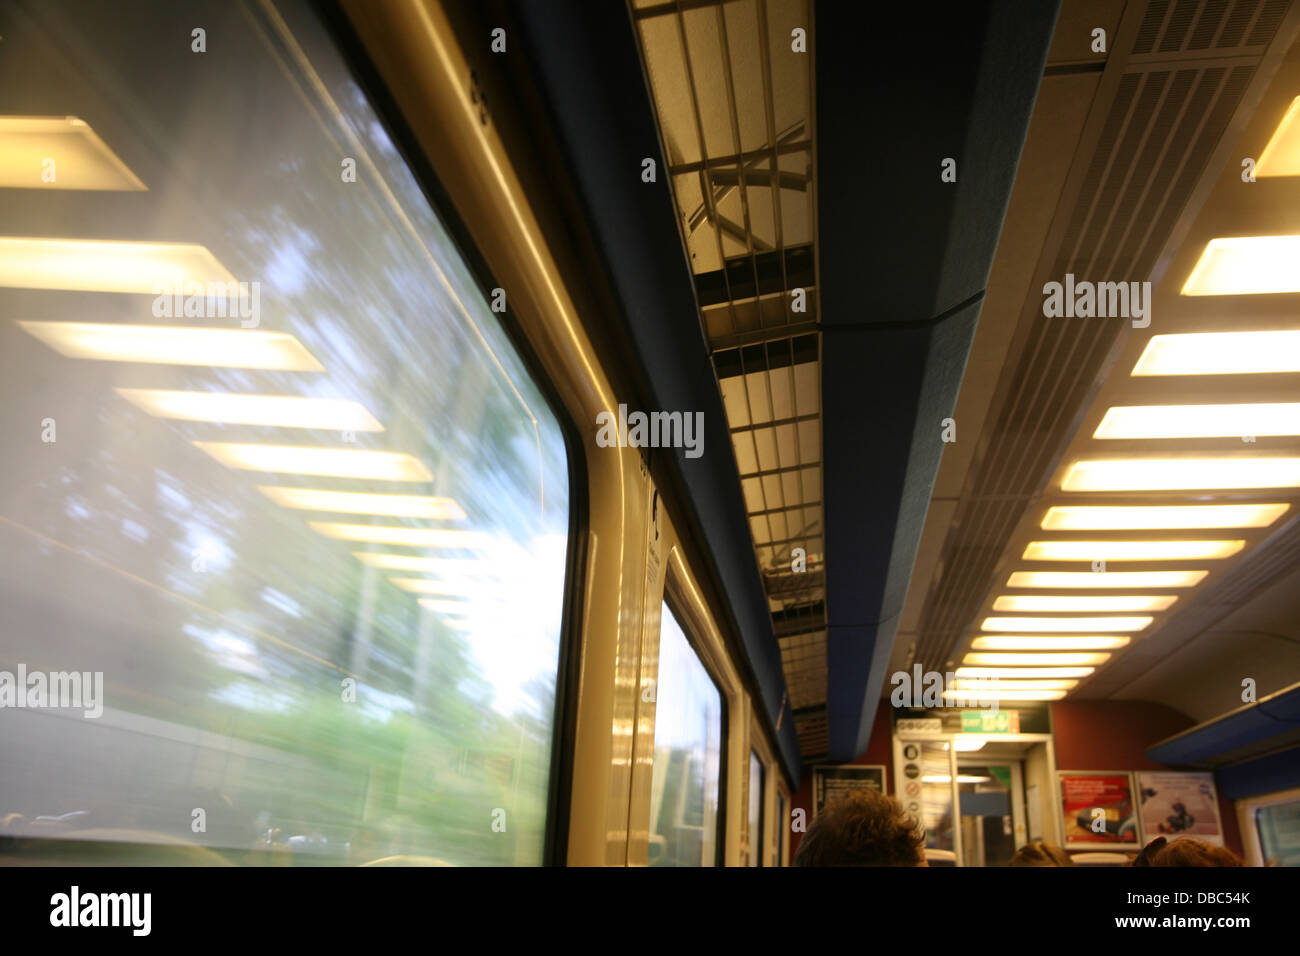 Lights blurred motion train carriage travelling high speed - Stock Image